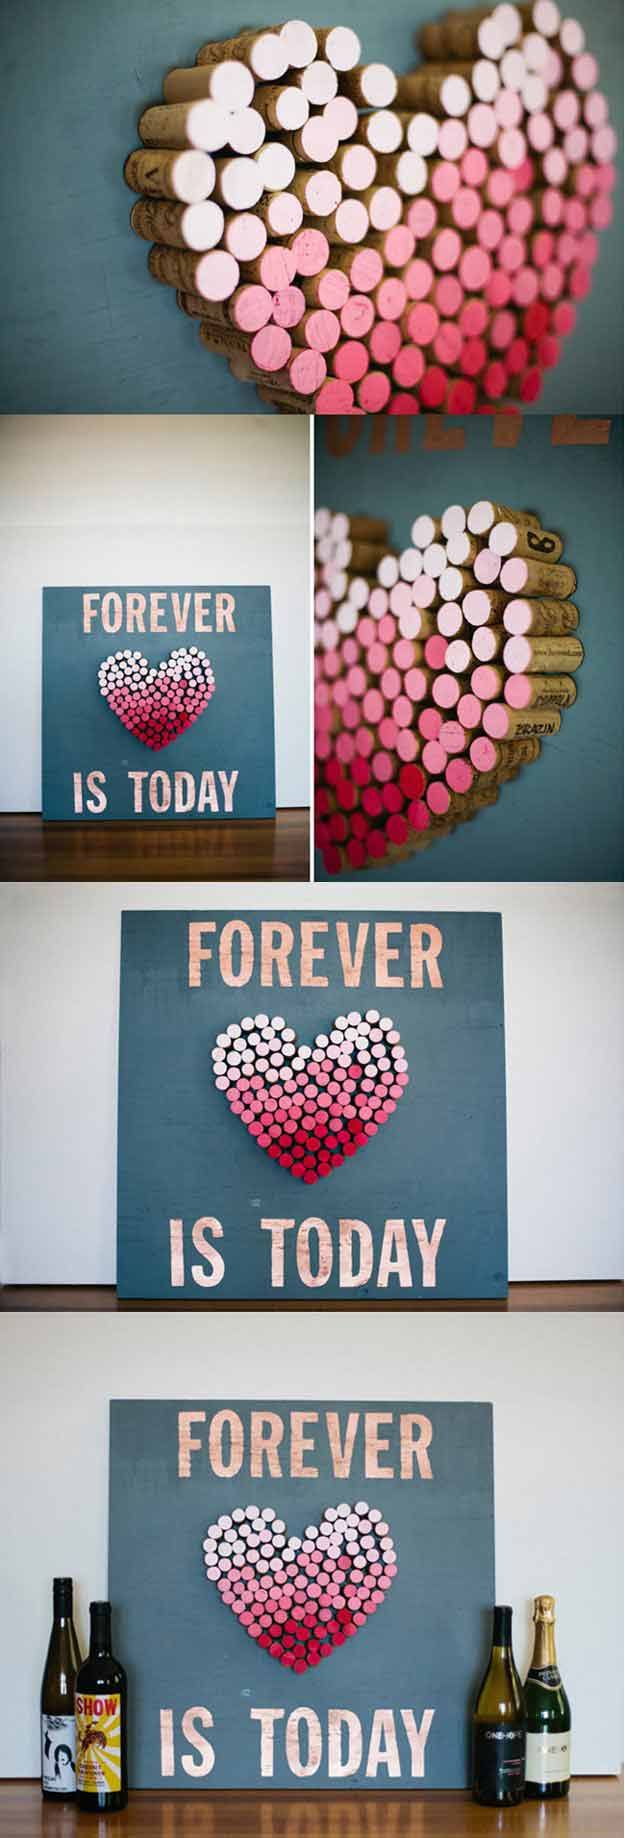 Easy Wine Cork Craft for Teen Bedroom | DIY Ombre Cork Art by DIY Ready at http://diyready.com/diy-projects-for-teens-bedroom/